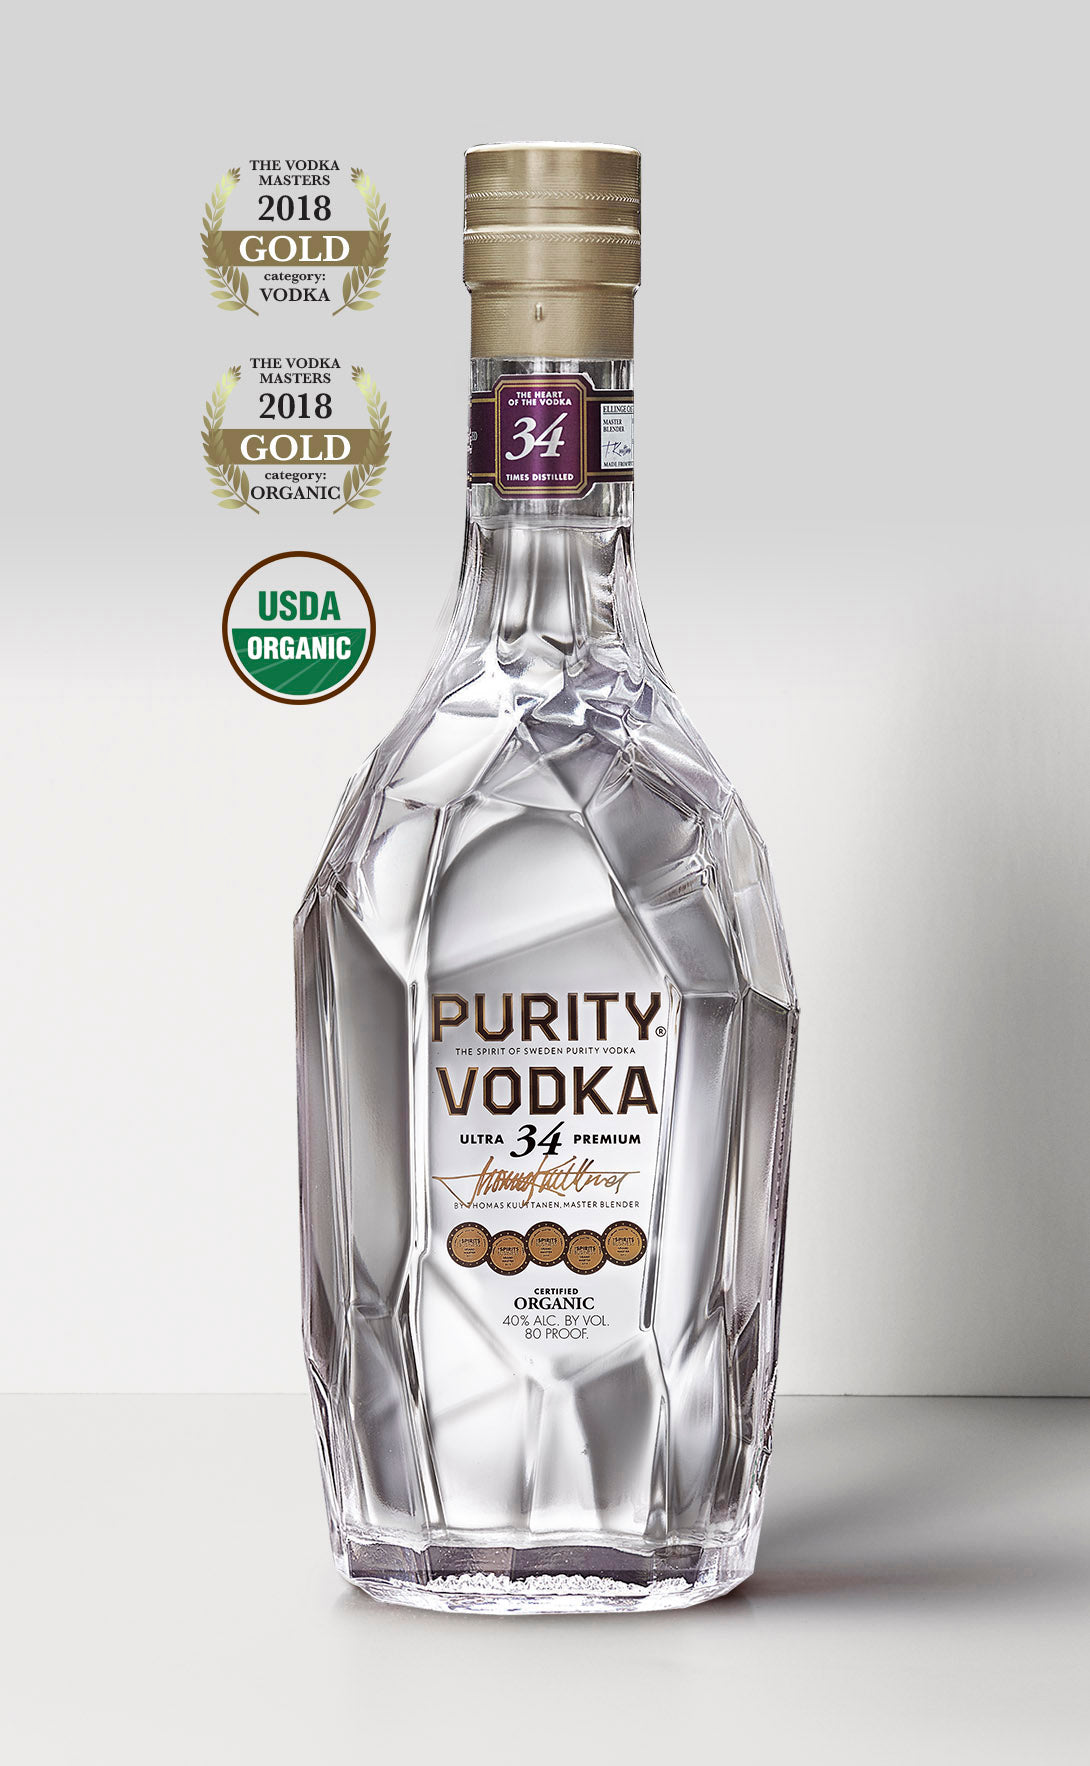 ULTRA 34 PREMIUM ORGANIC VODKA